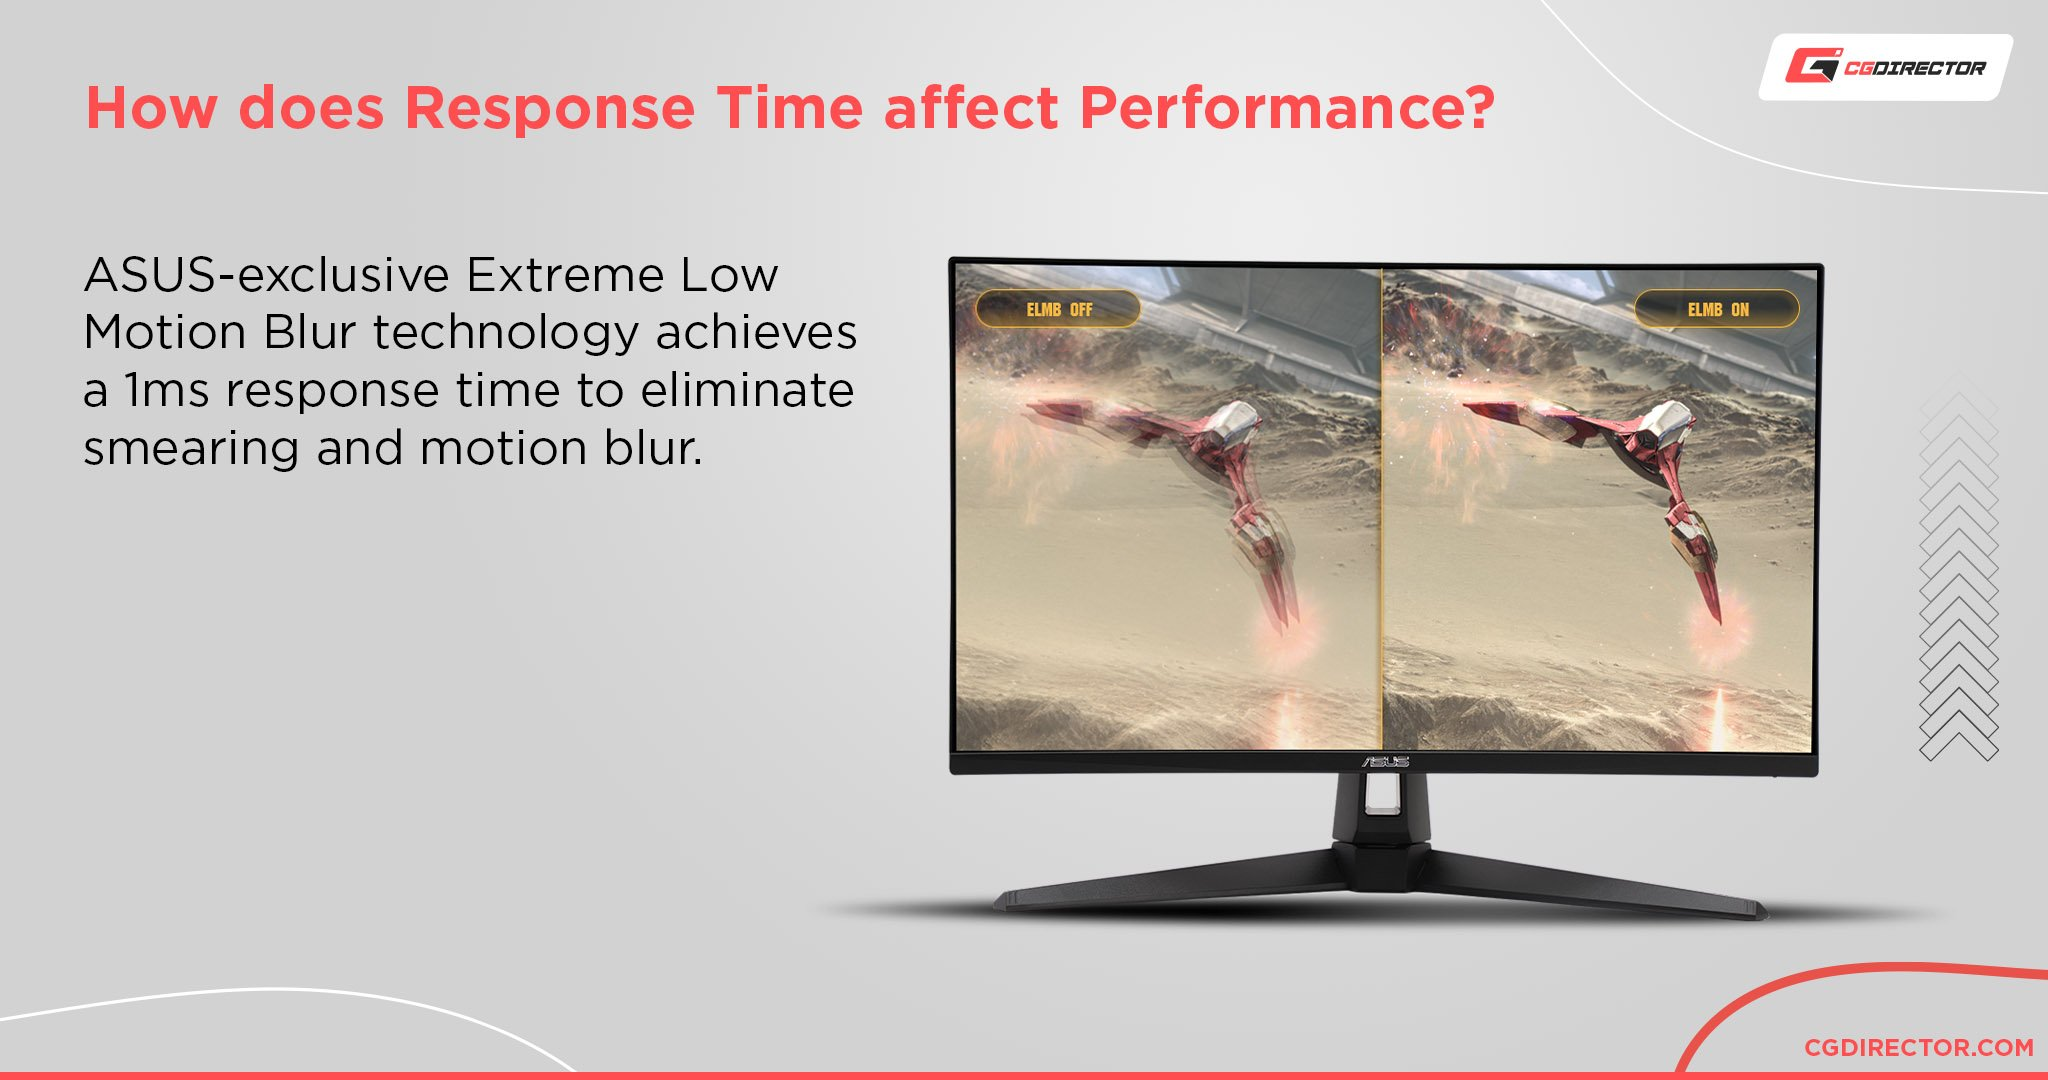 How does response time affect performance